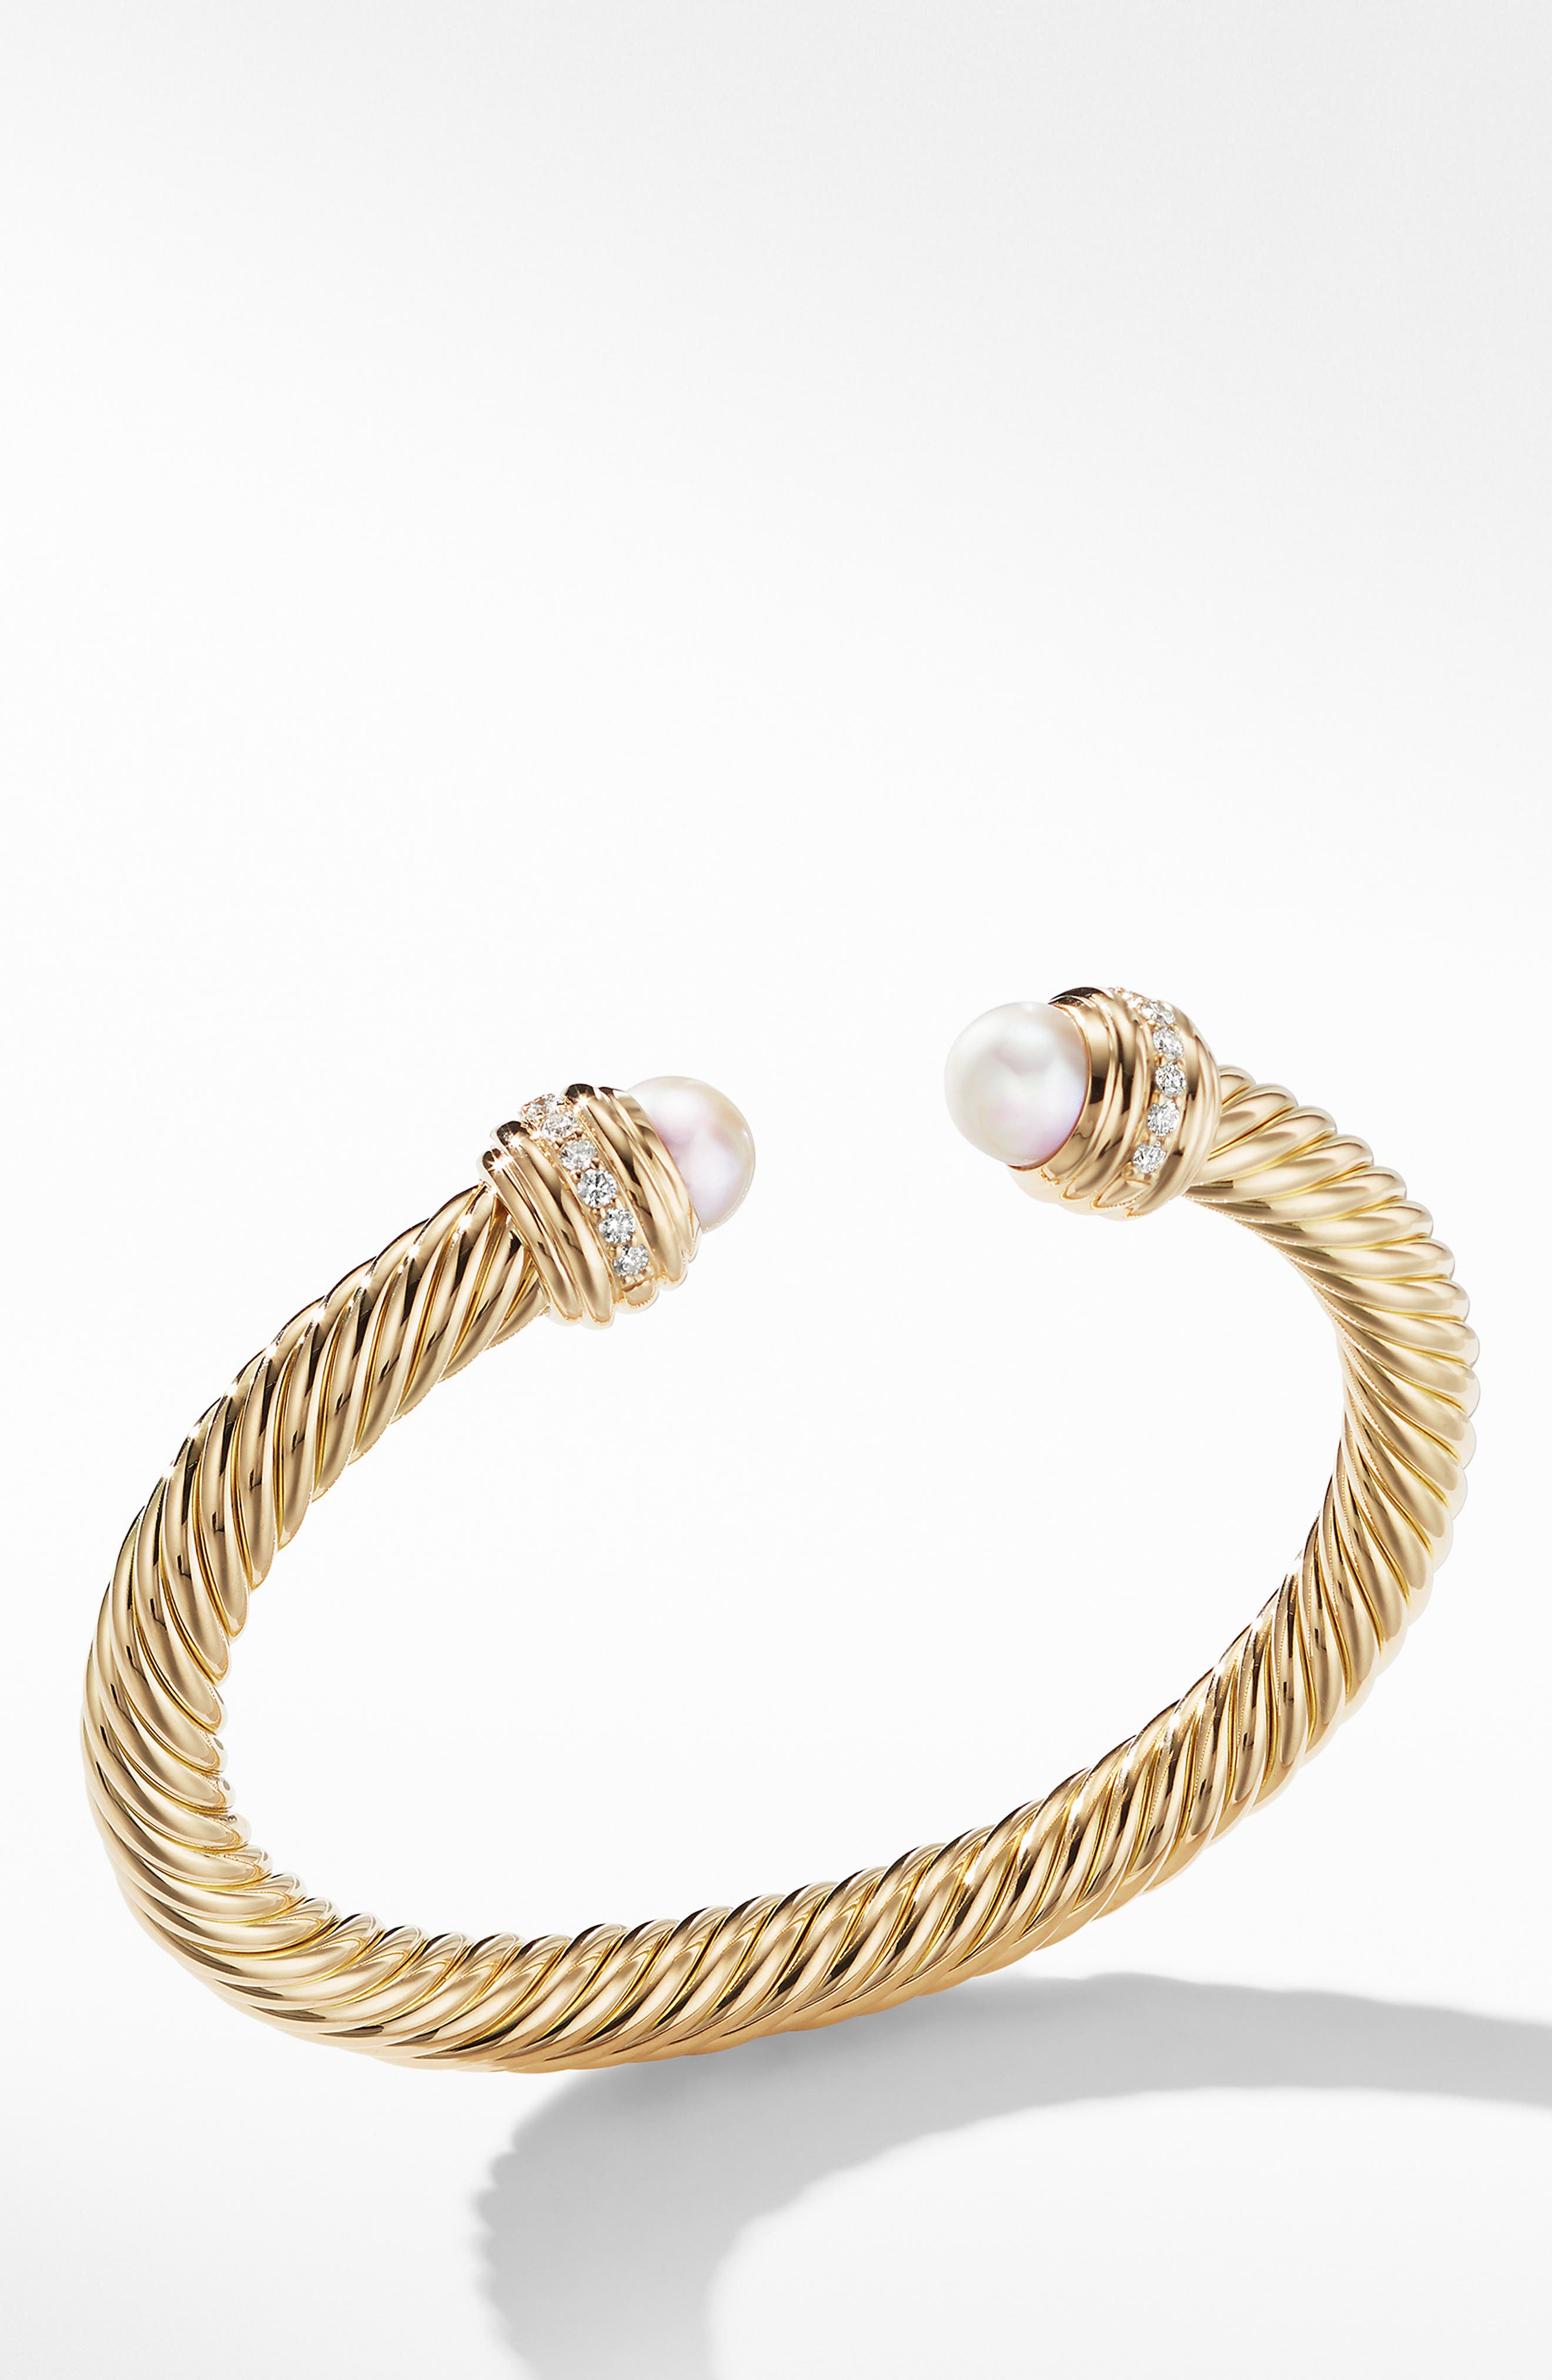 Cable Bracelet in 18K Gold with Diamonds,                             Main thumbnail 1, color,                             YELLOW GOLD/ DIAMOND/ PEARL